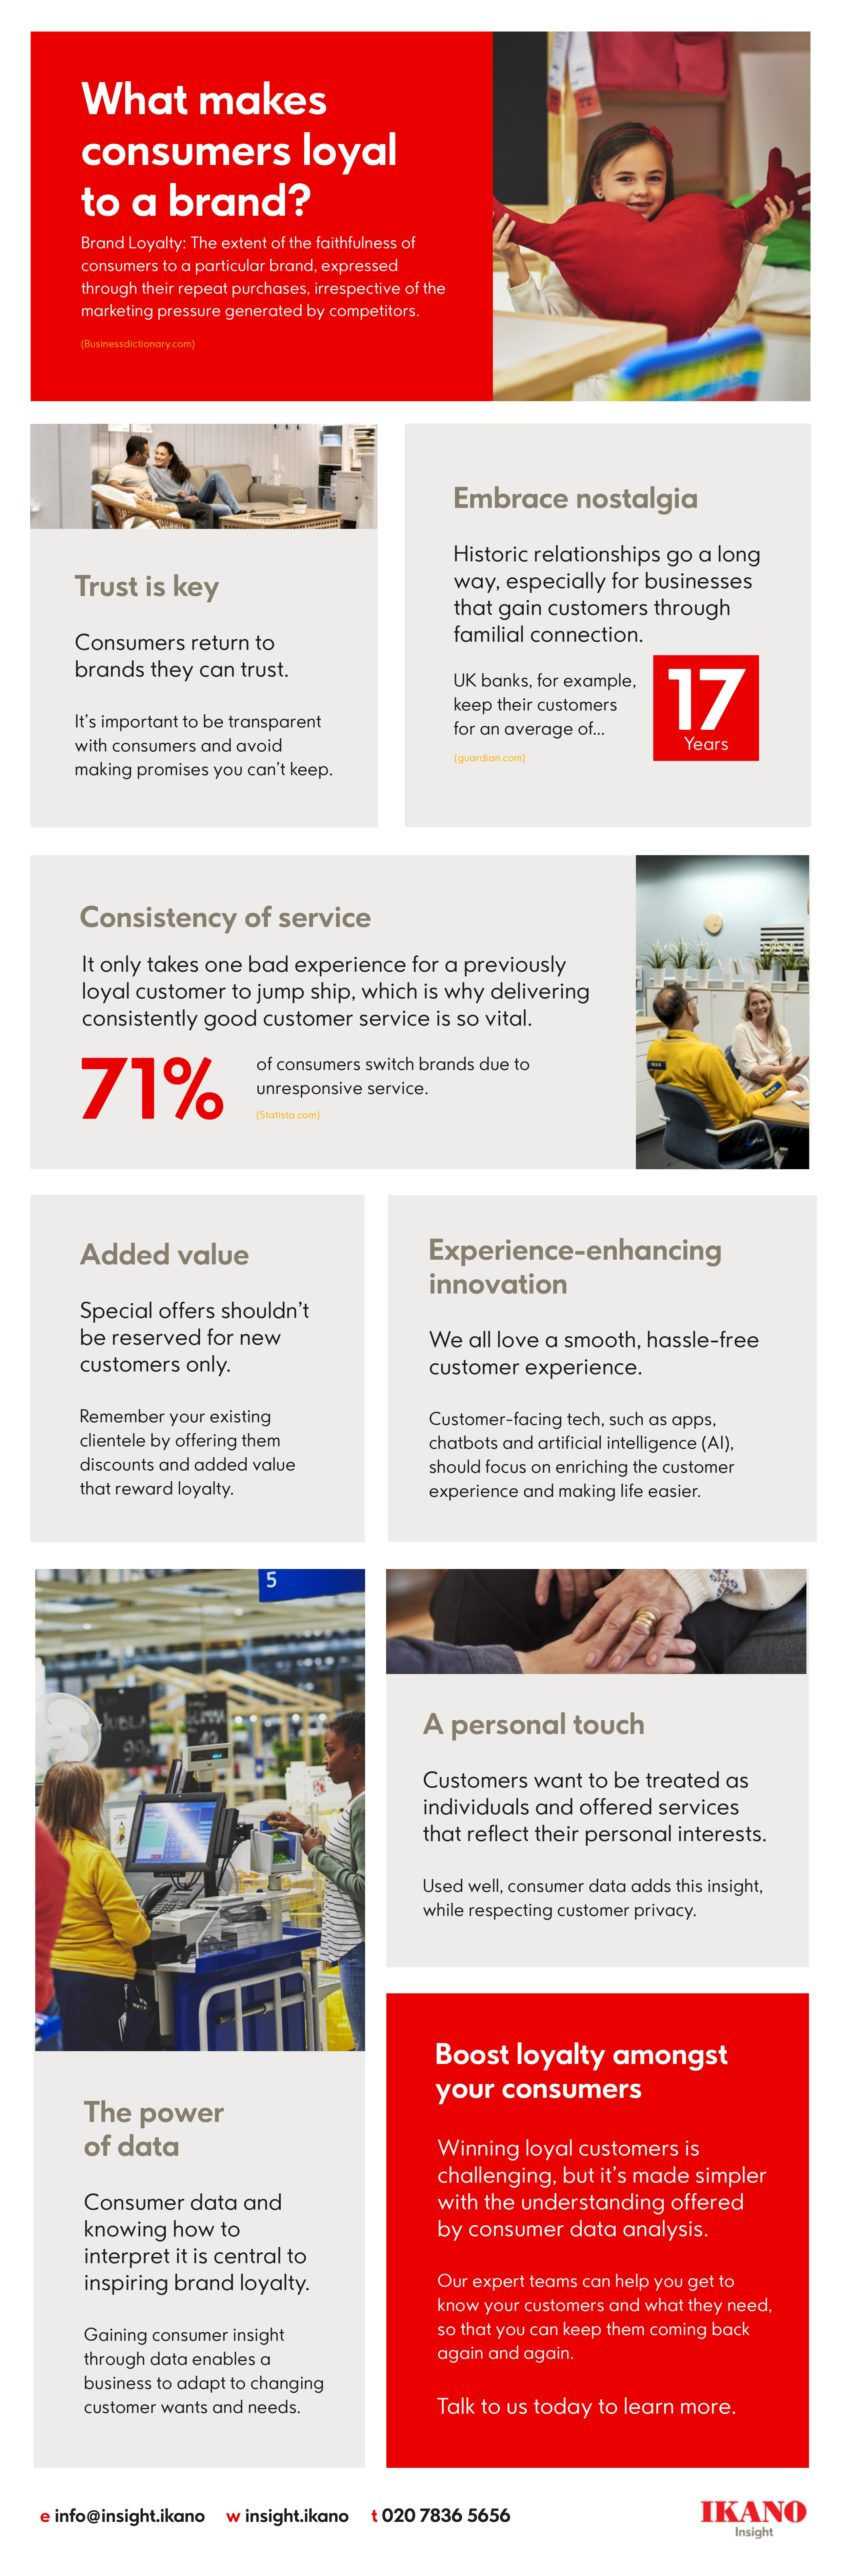 Ikano_Insight_Brand_Loyalty_Infographic_March2020